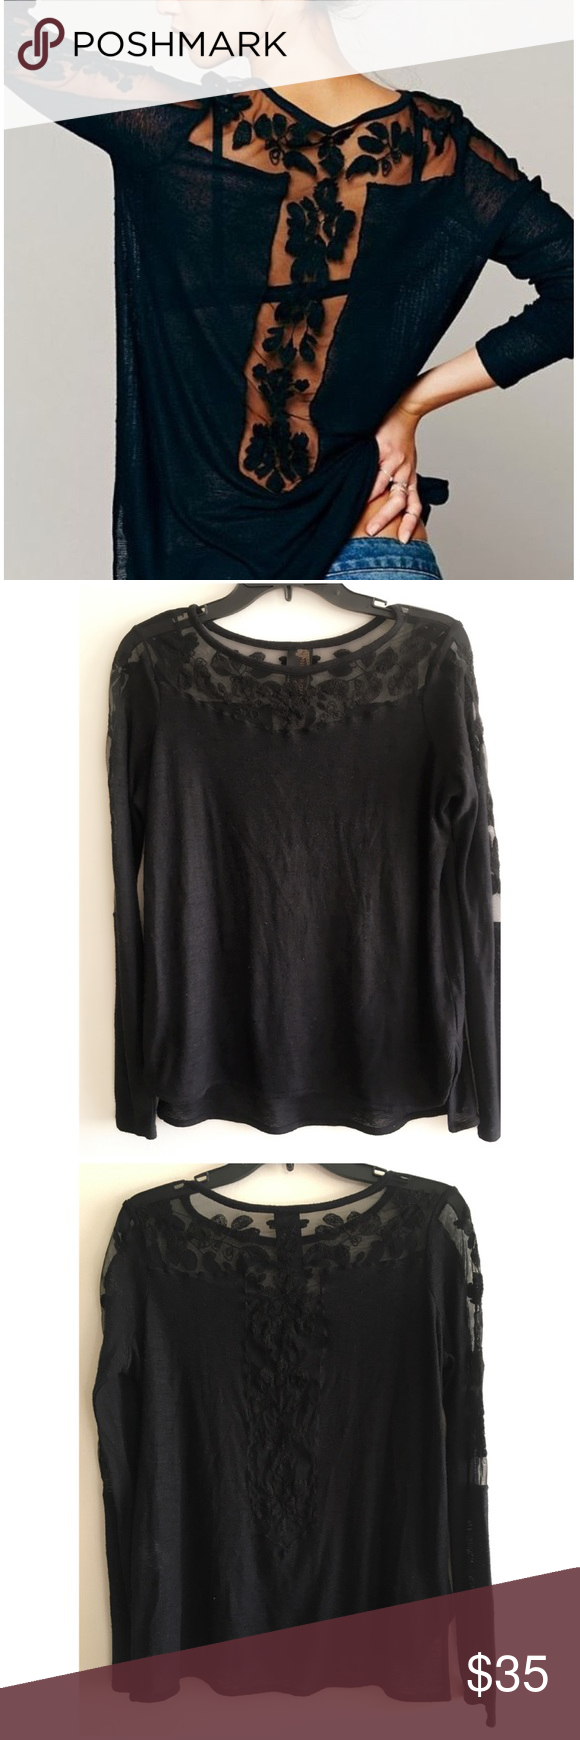 8dbb19fbb96e7d High Low Long Sleeve Round Neck Lace Blouse